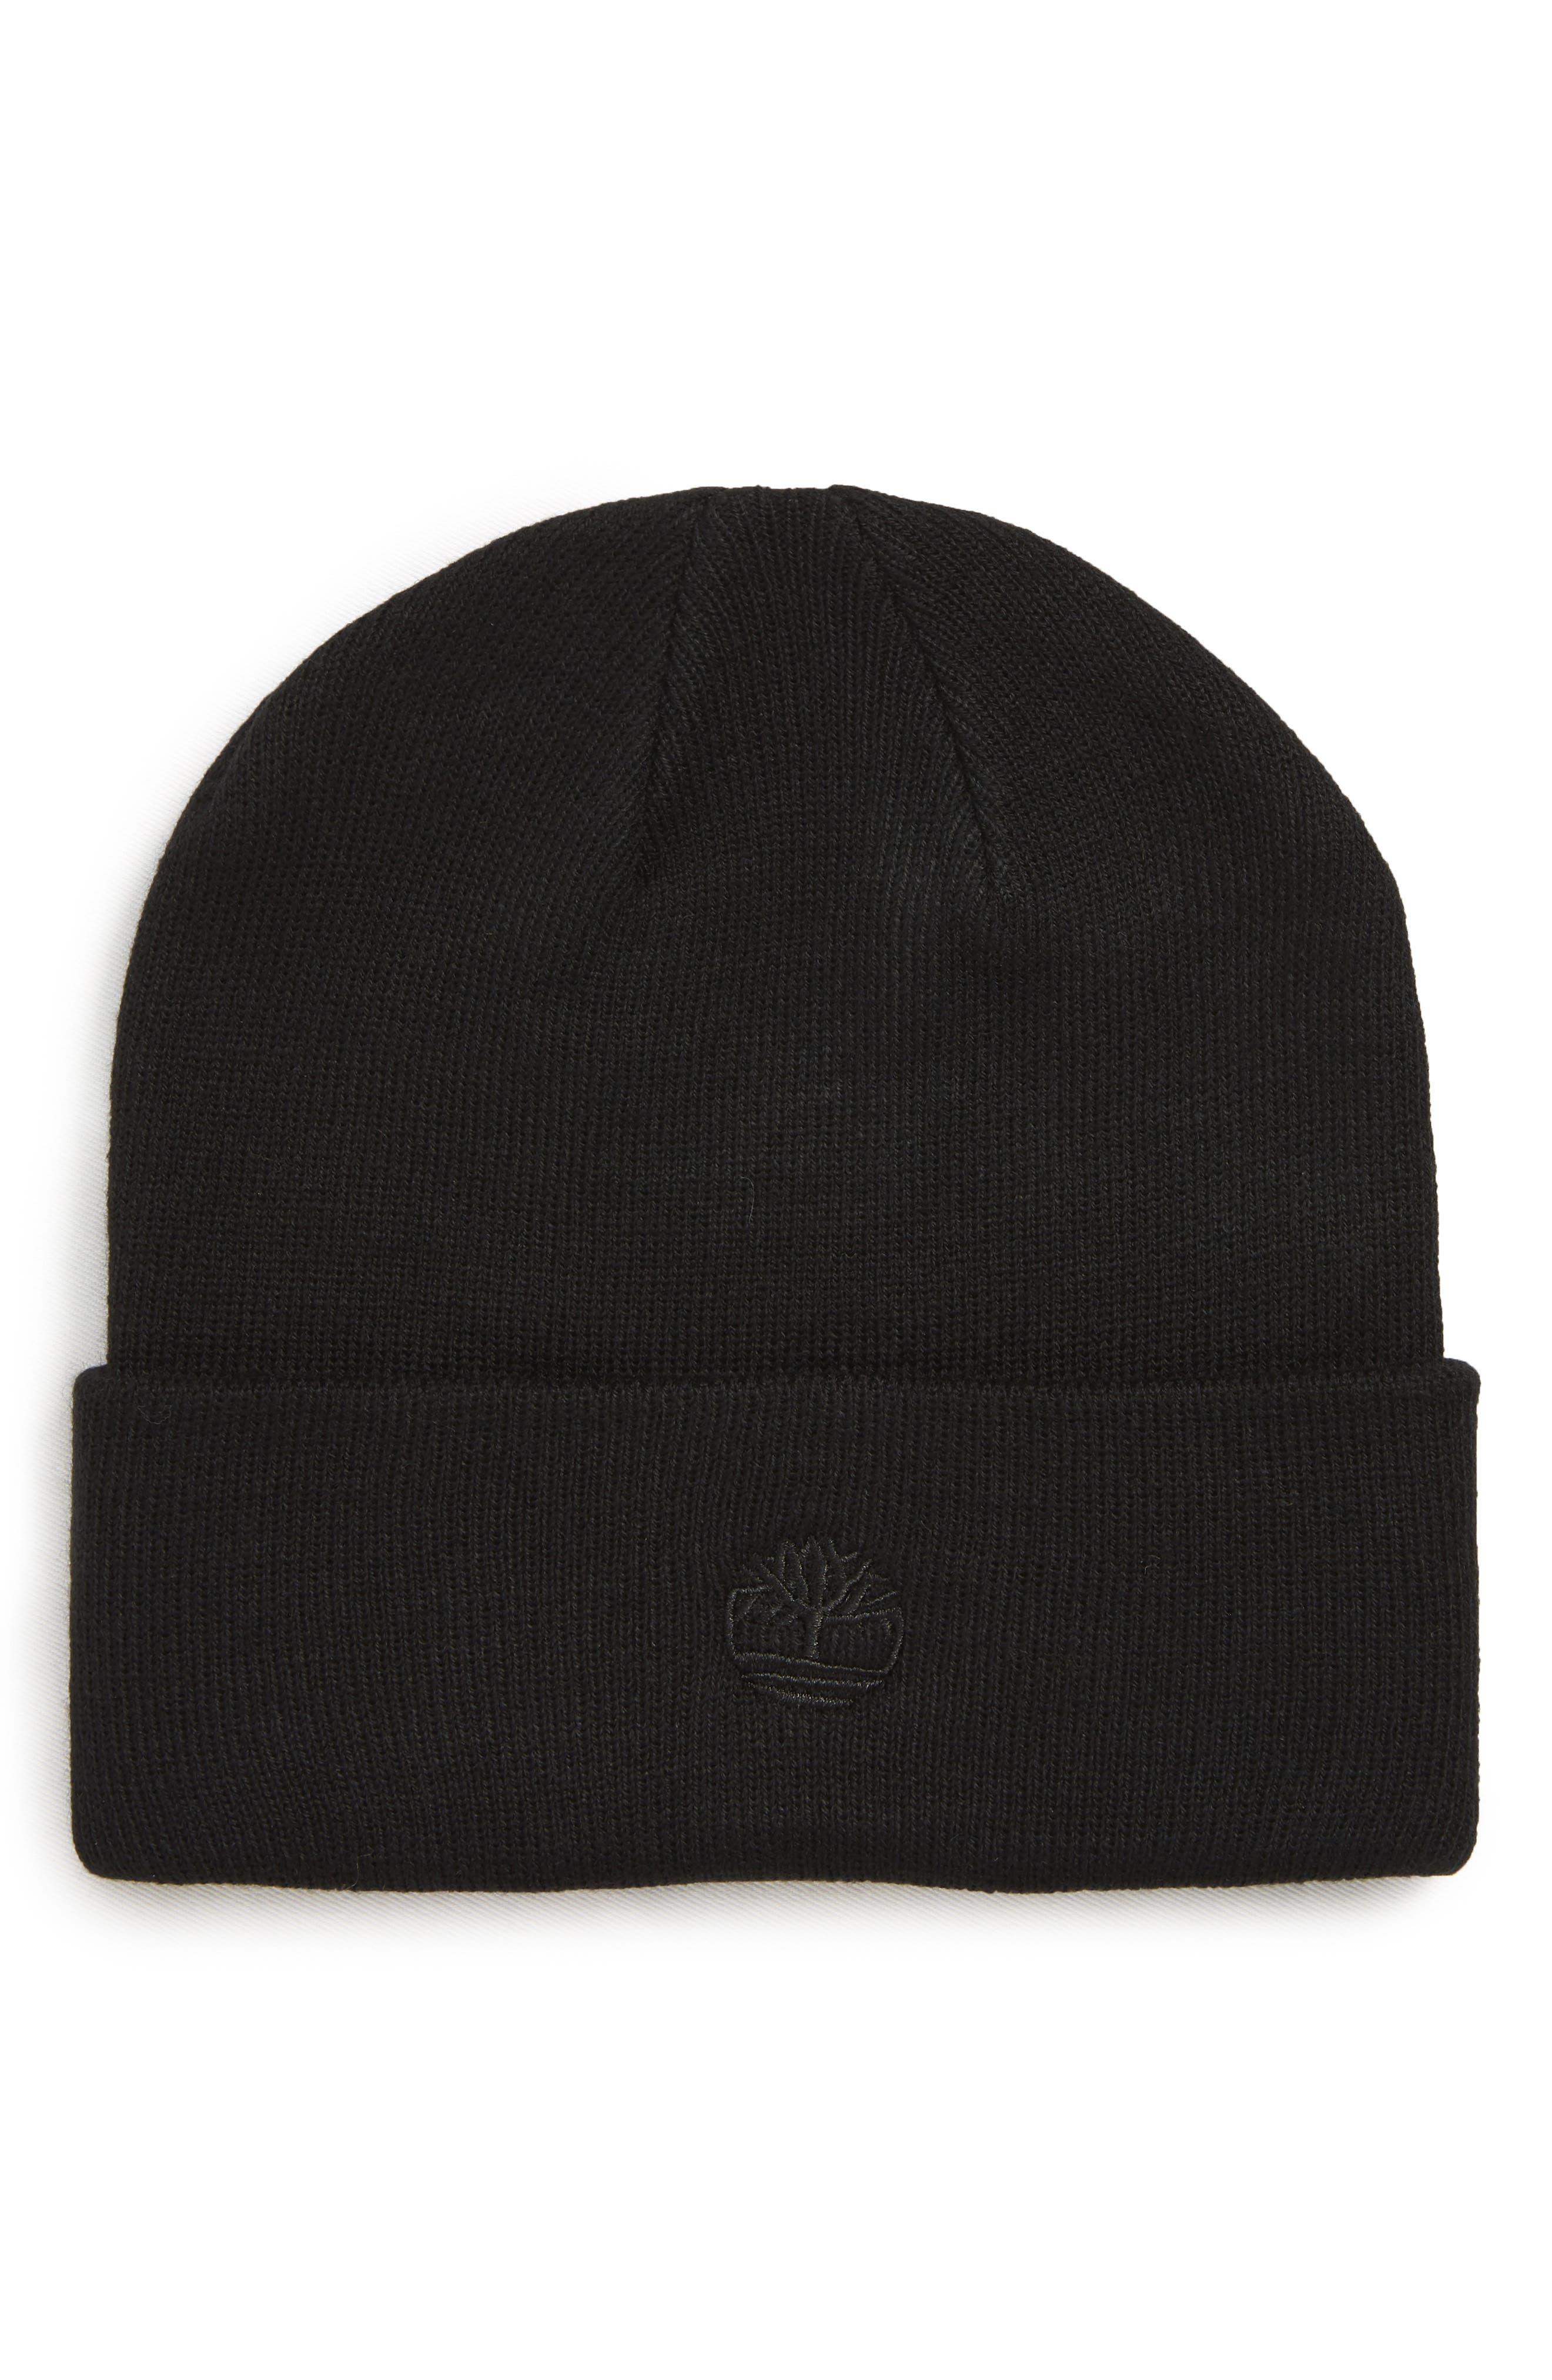 Image of Timberland Embroidered Logo Cuffed Knit Beanie